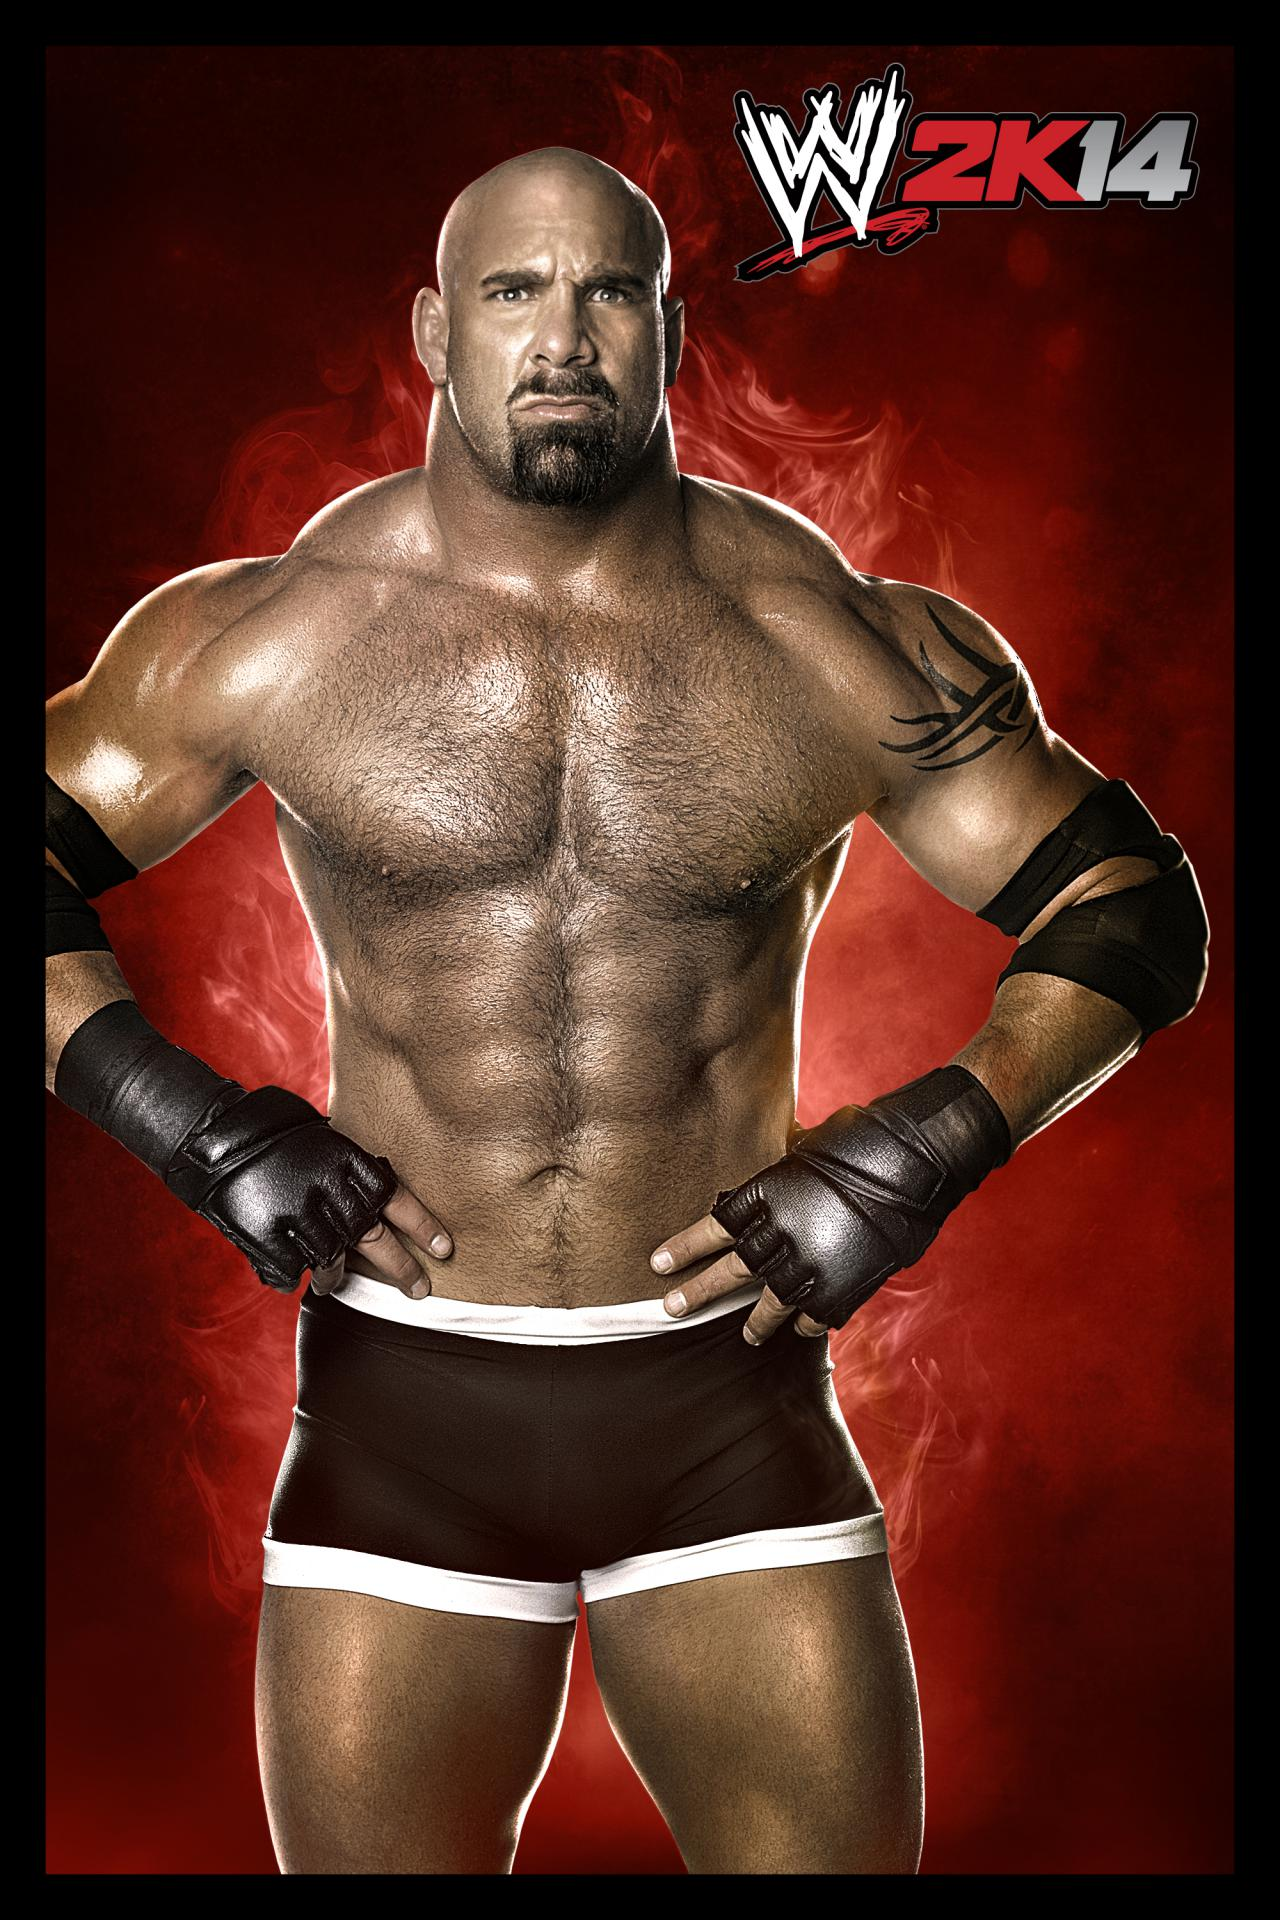 wwe 2k14's full character roster revealed, get the list & pics here